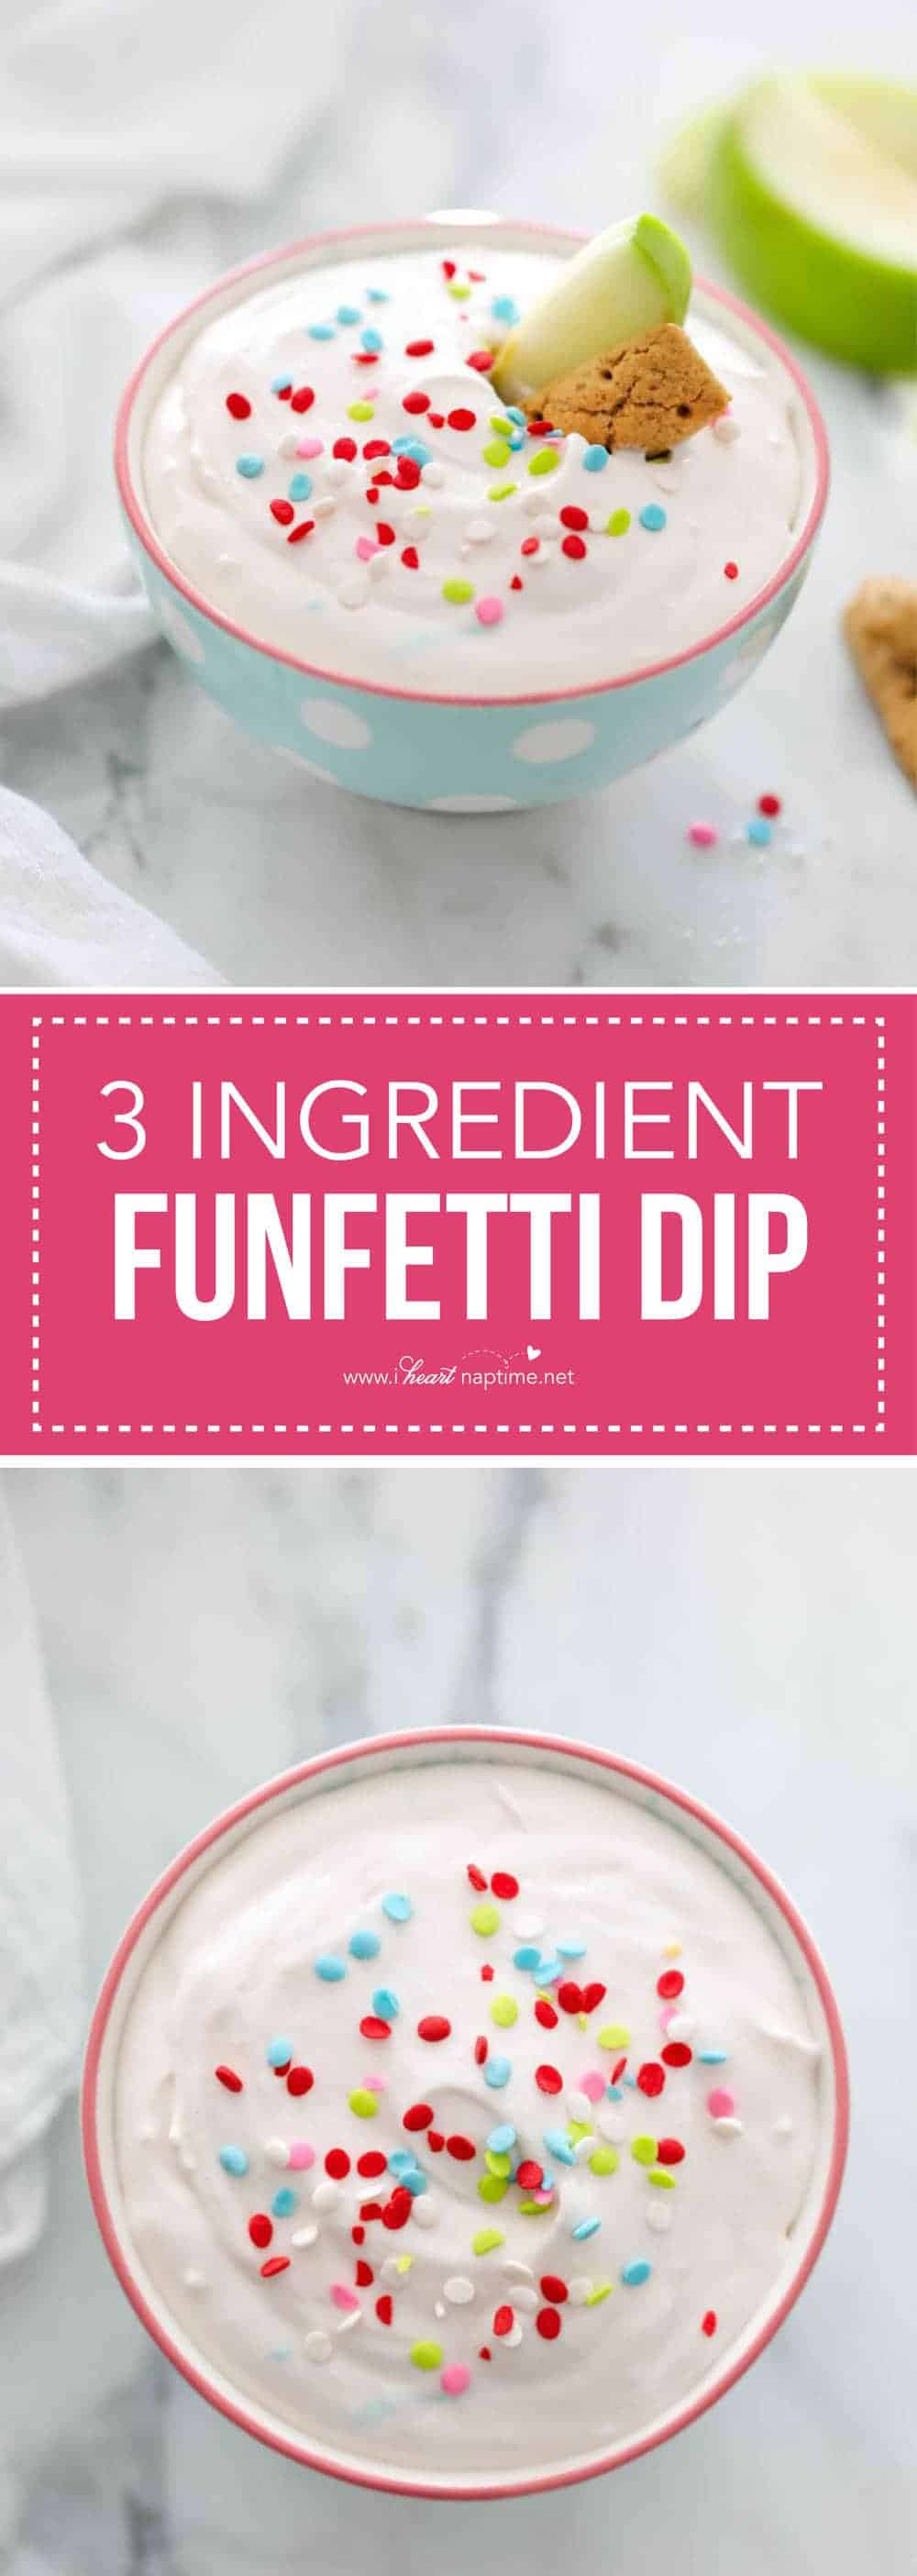 3 Ingredient Funfetti dip -a quick and easy lighter treat to enjoy with family and friends! Dip with your favorite fruit or graham crackers for the ultimate snack.